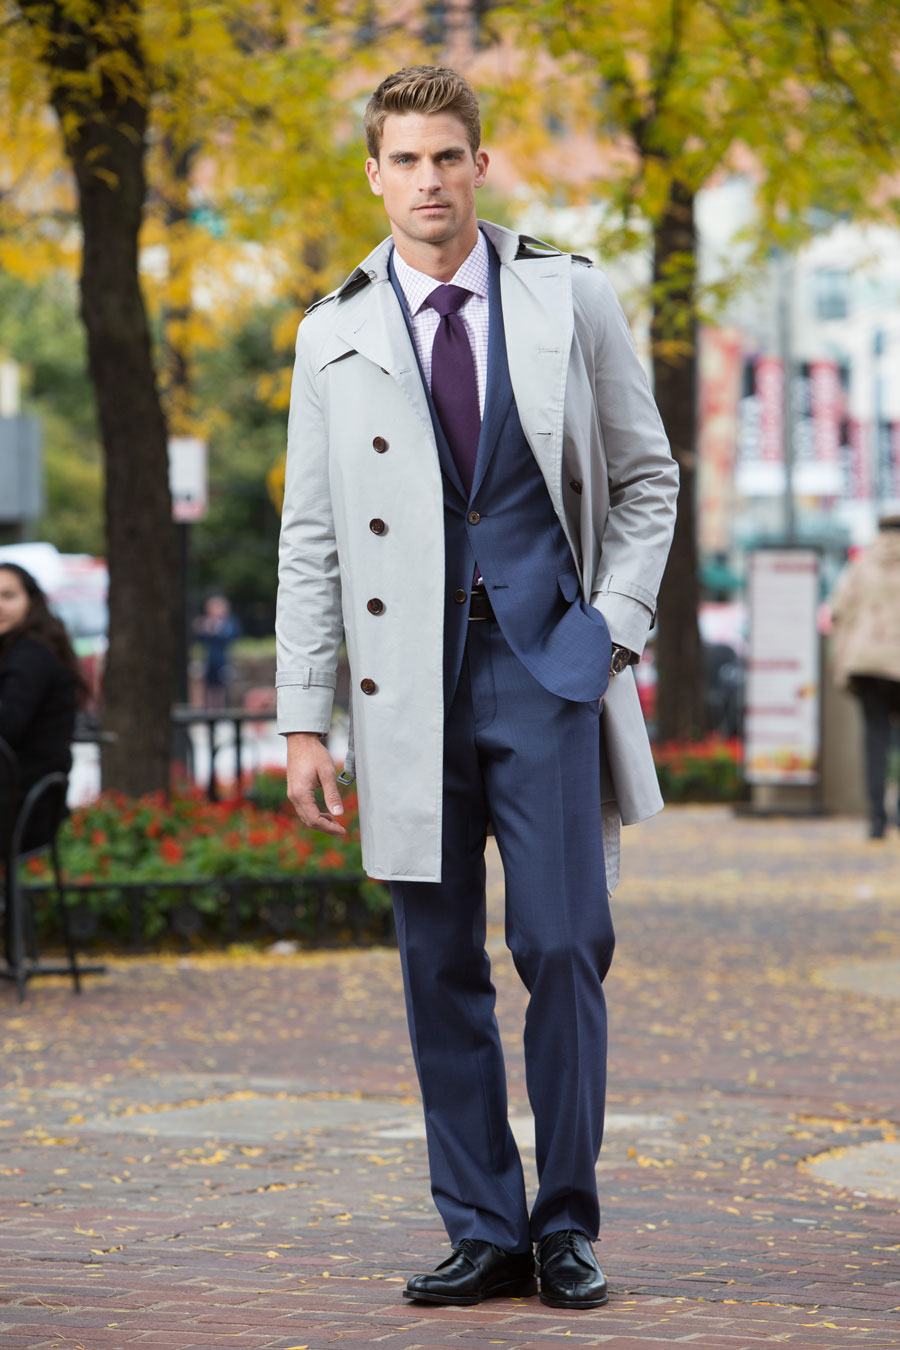 Grey-Custom-Trenchcoat-Outerwear-Navy-Tailormade-Suit-Lavender-Checked-Shirt-Purple-Tie-Fall-Leaves-Balani-Chicago-900.jpg.jpg